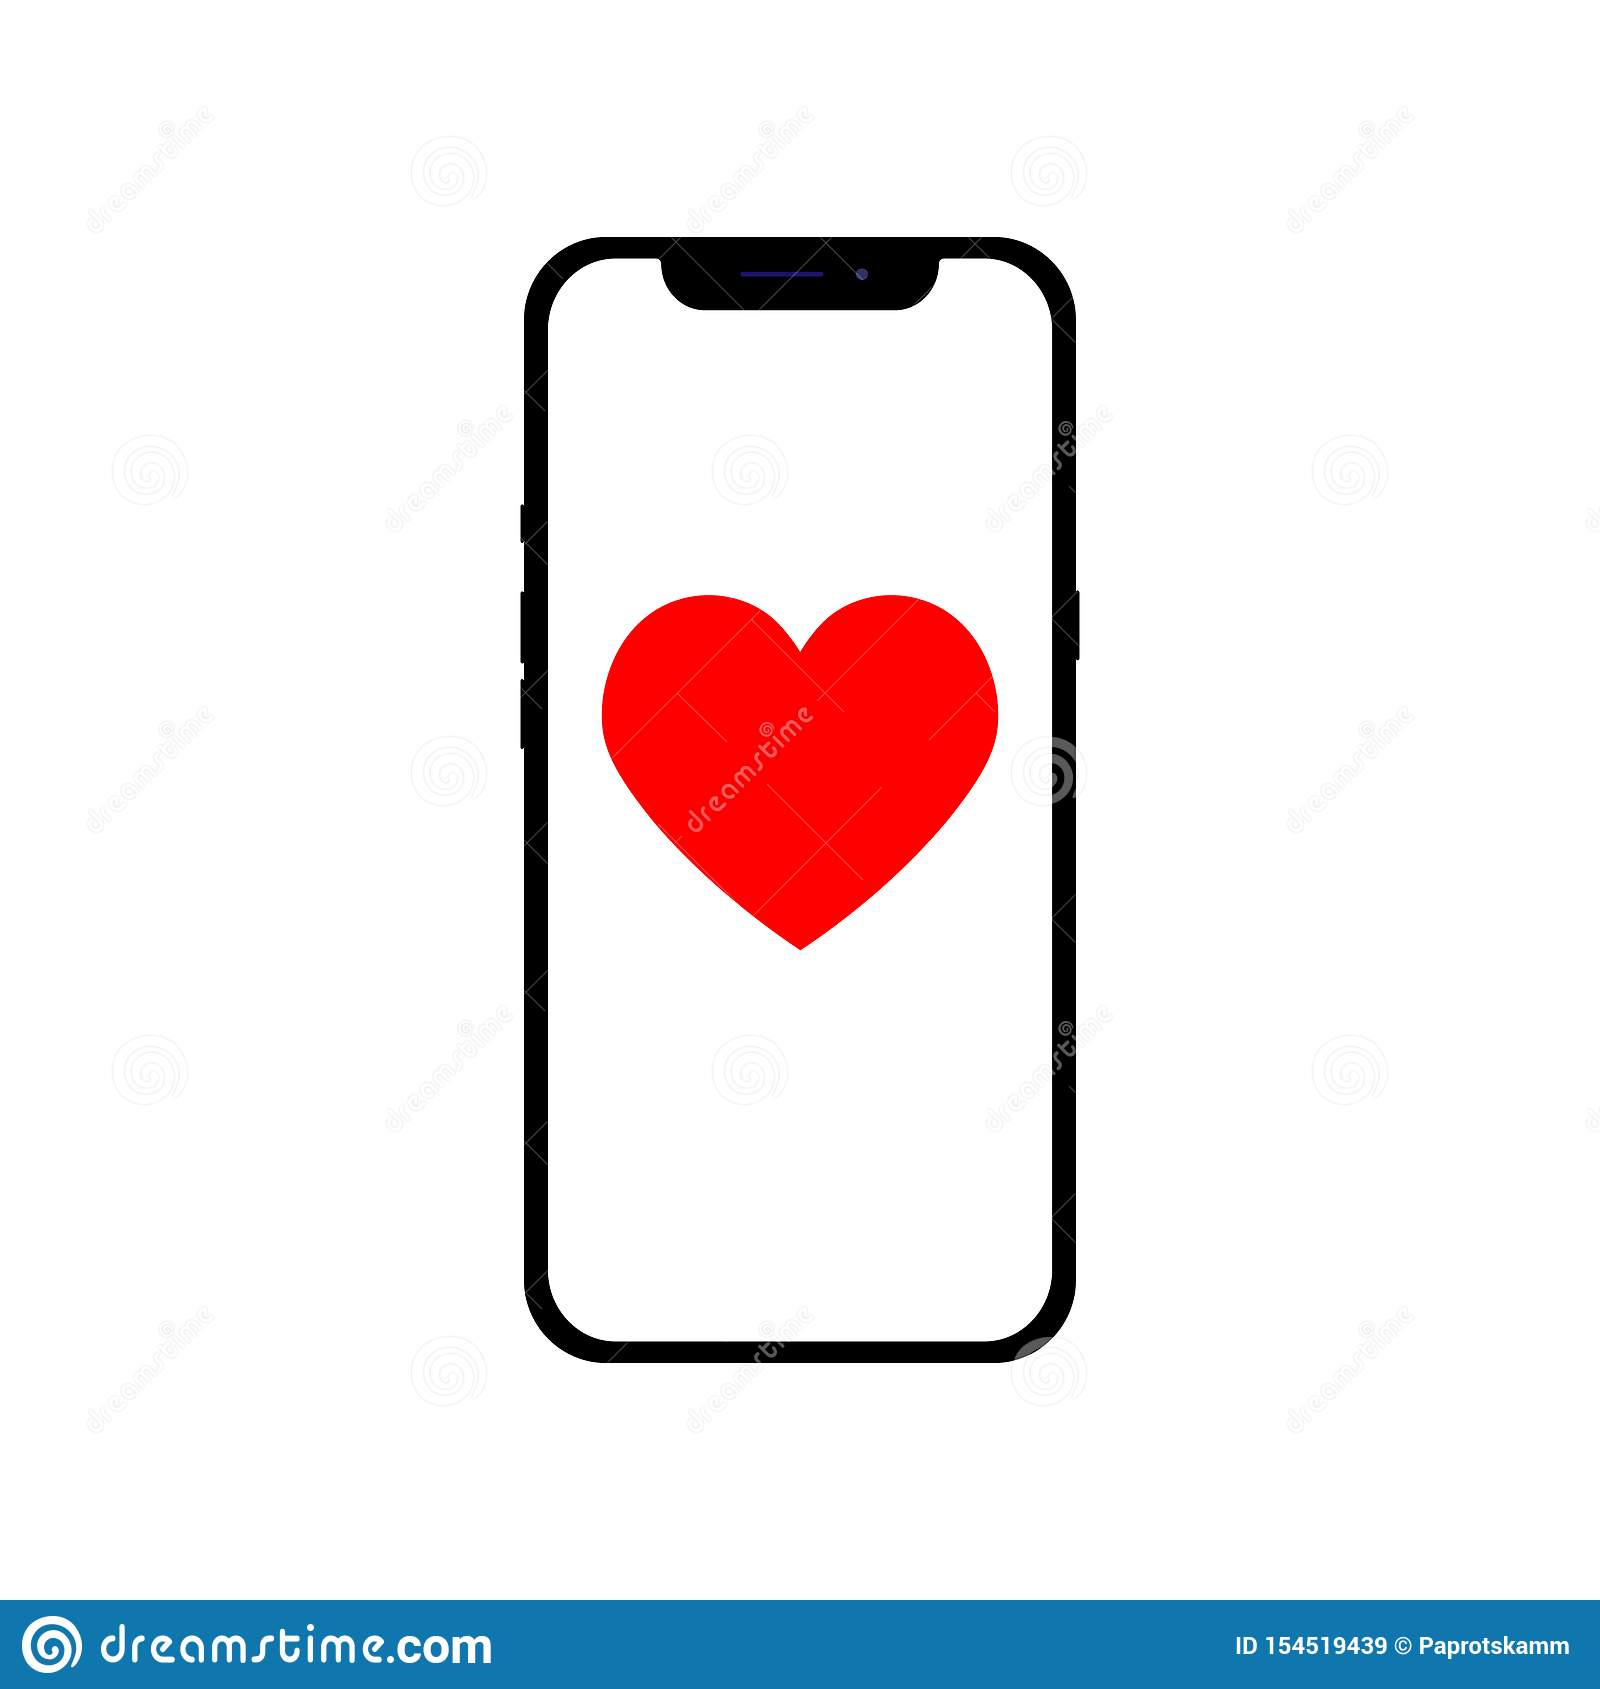 Telephone with icon heart for different purposes, flat design infographic illustration